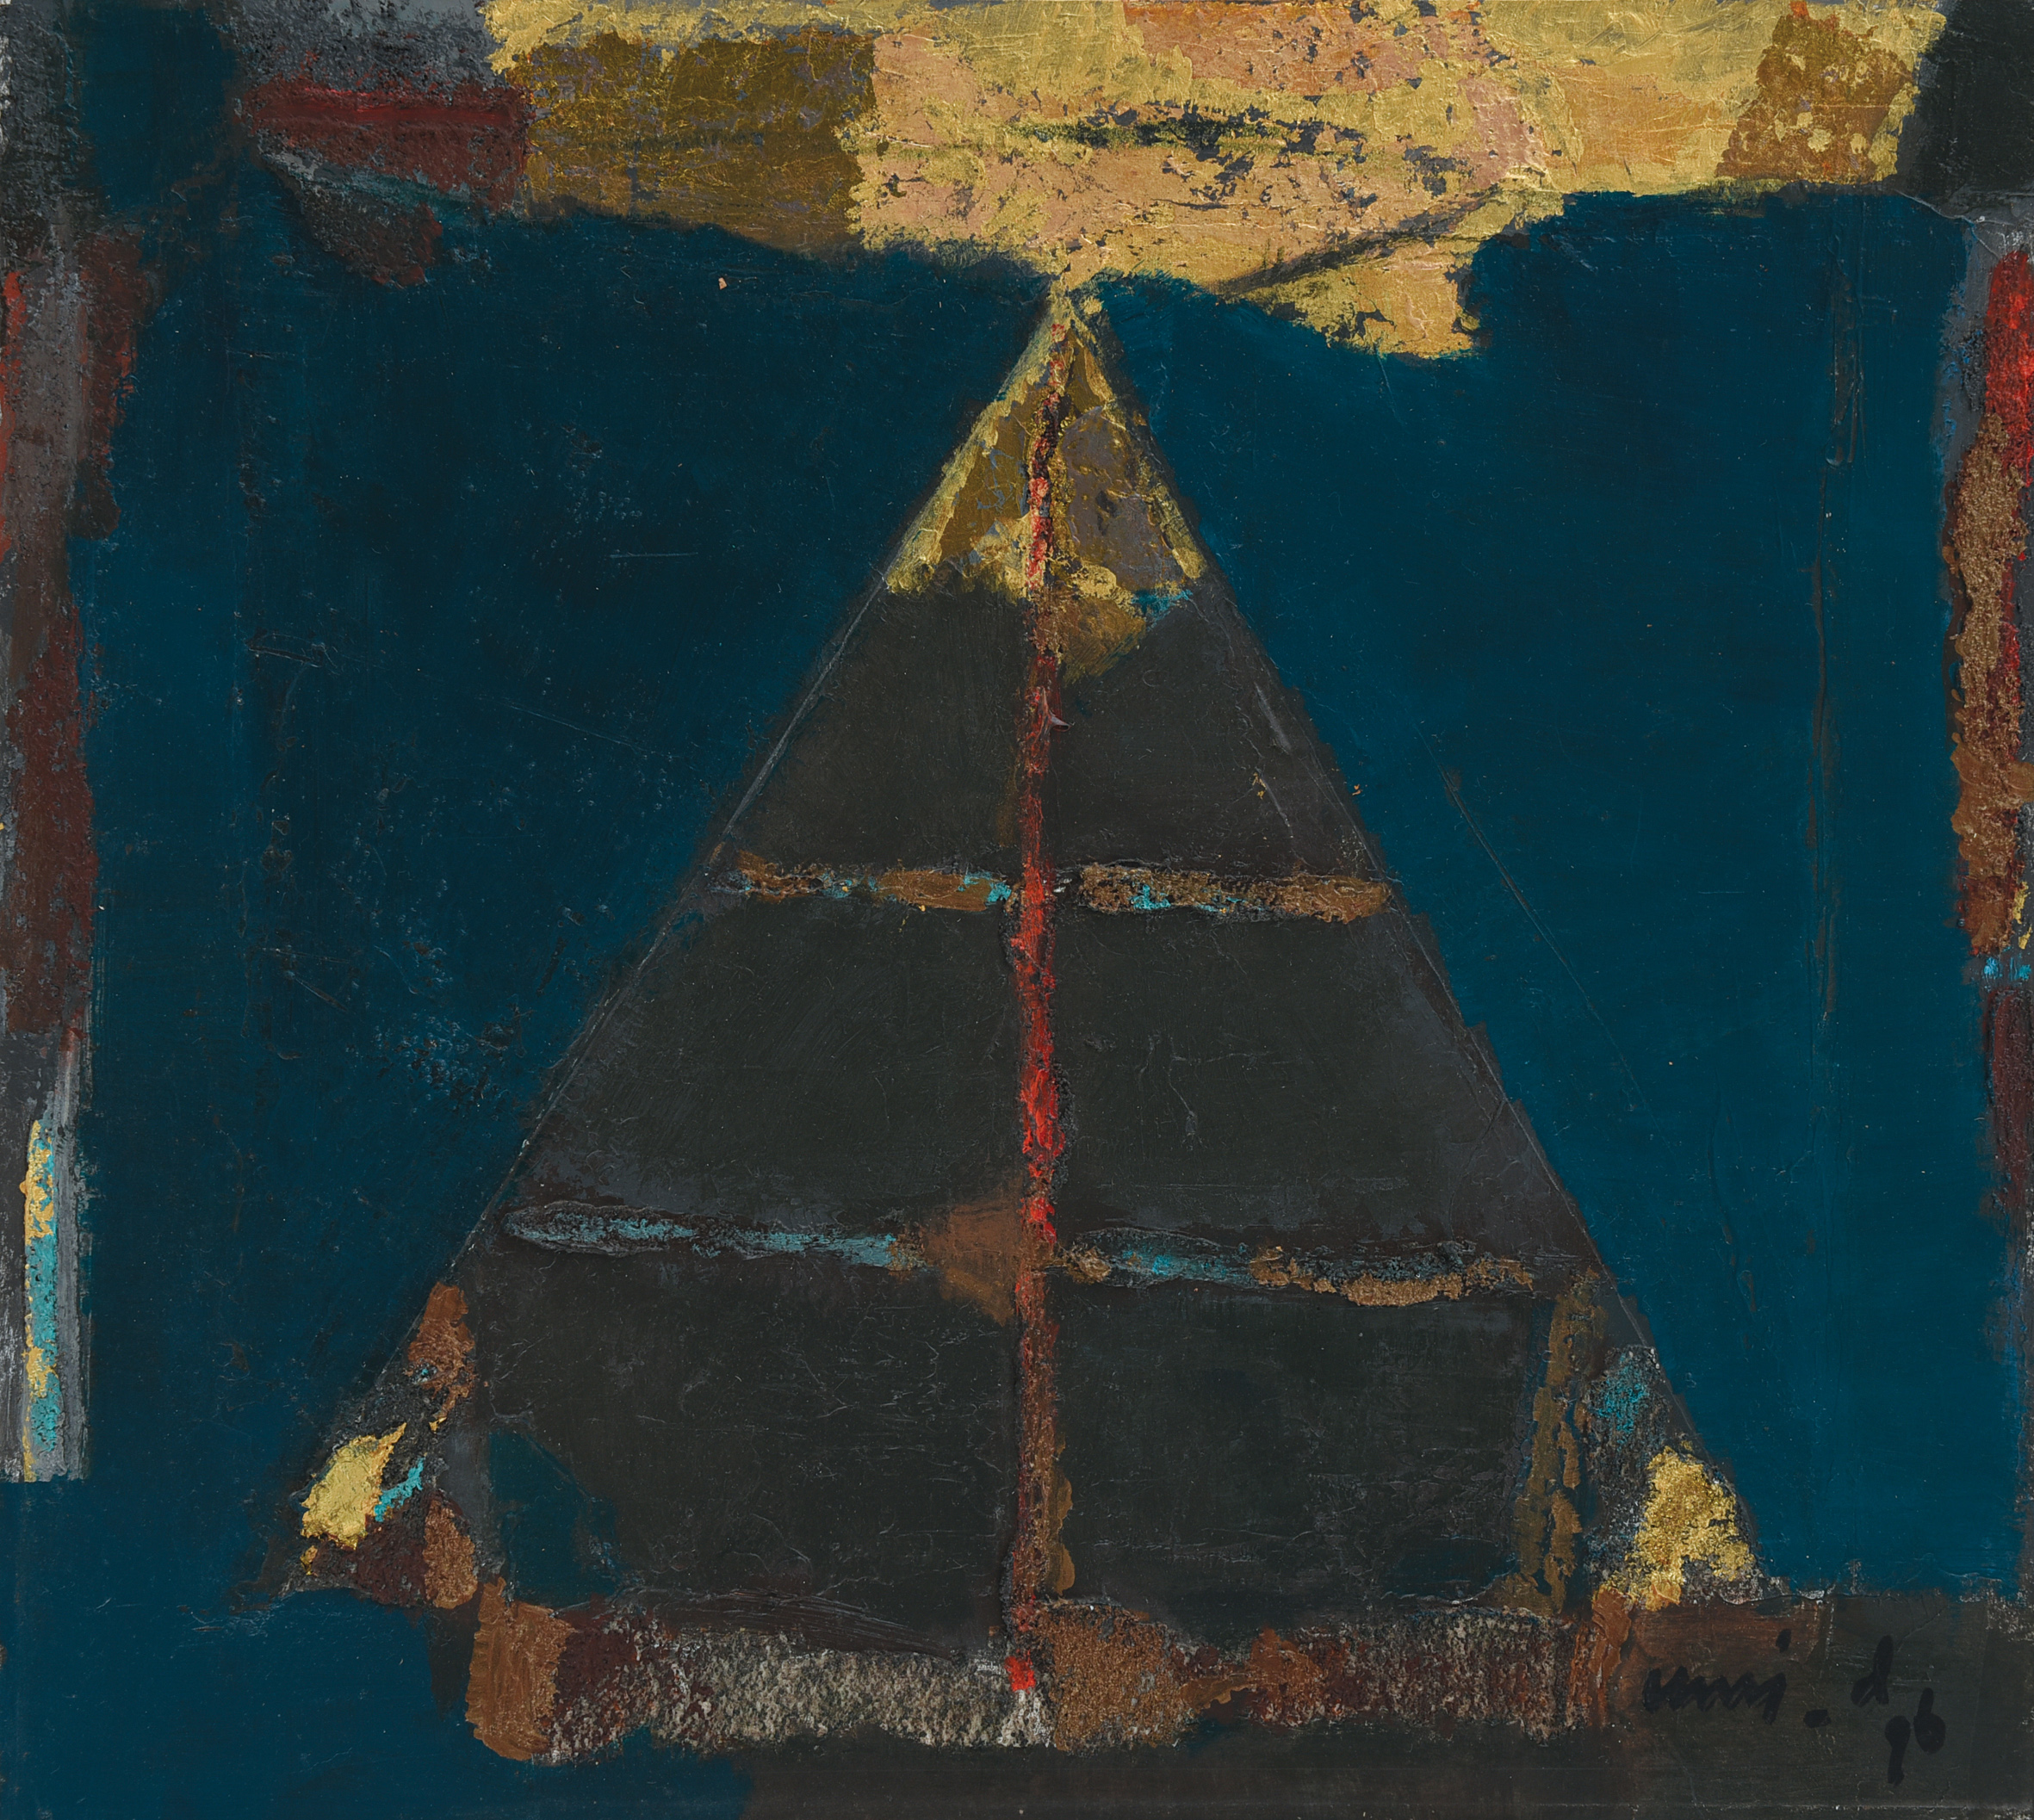 Umi Dachalan, Contemplation, oil and mixed media on paper mounted on board, 36 x 40 cm, 1996